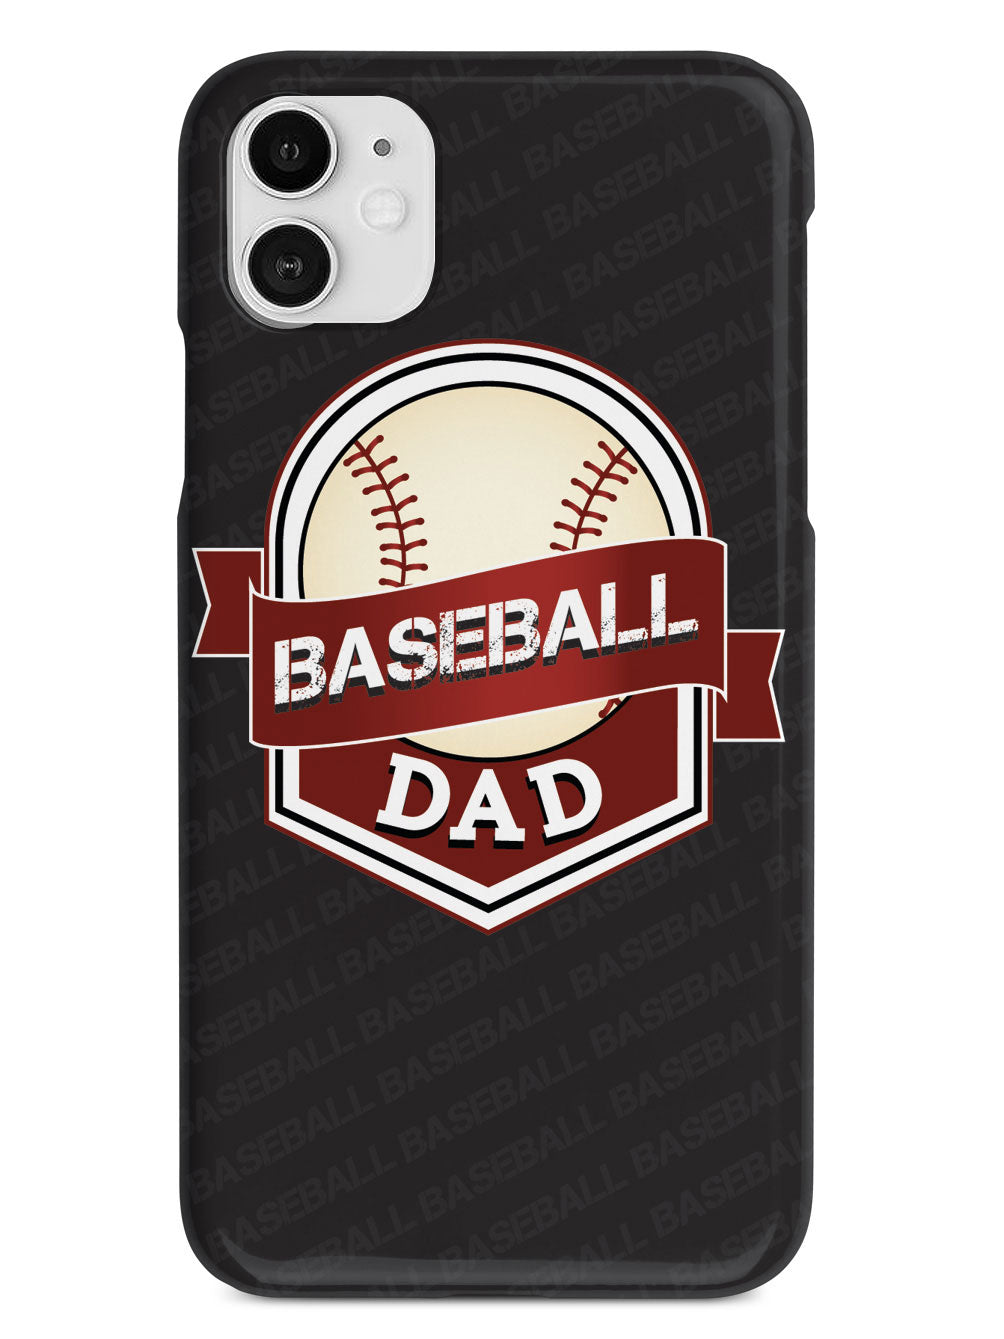 Baseball Dad Case